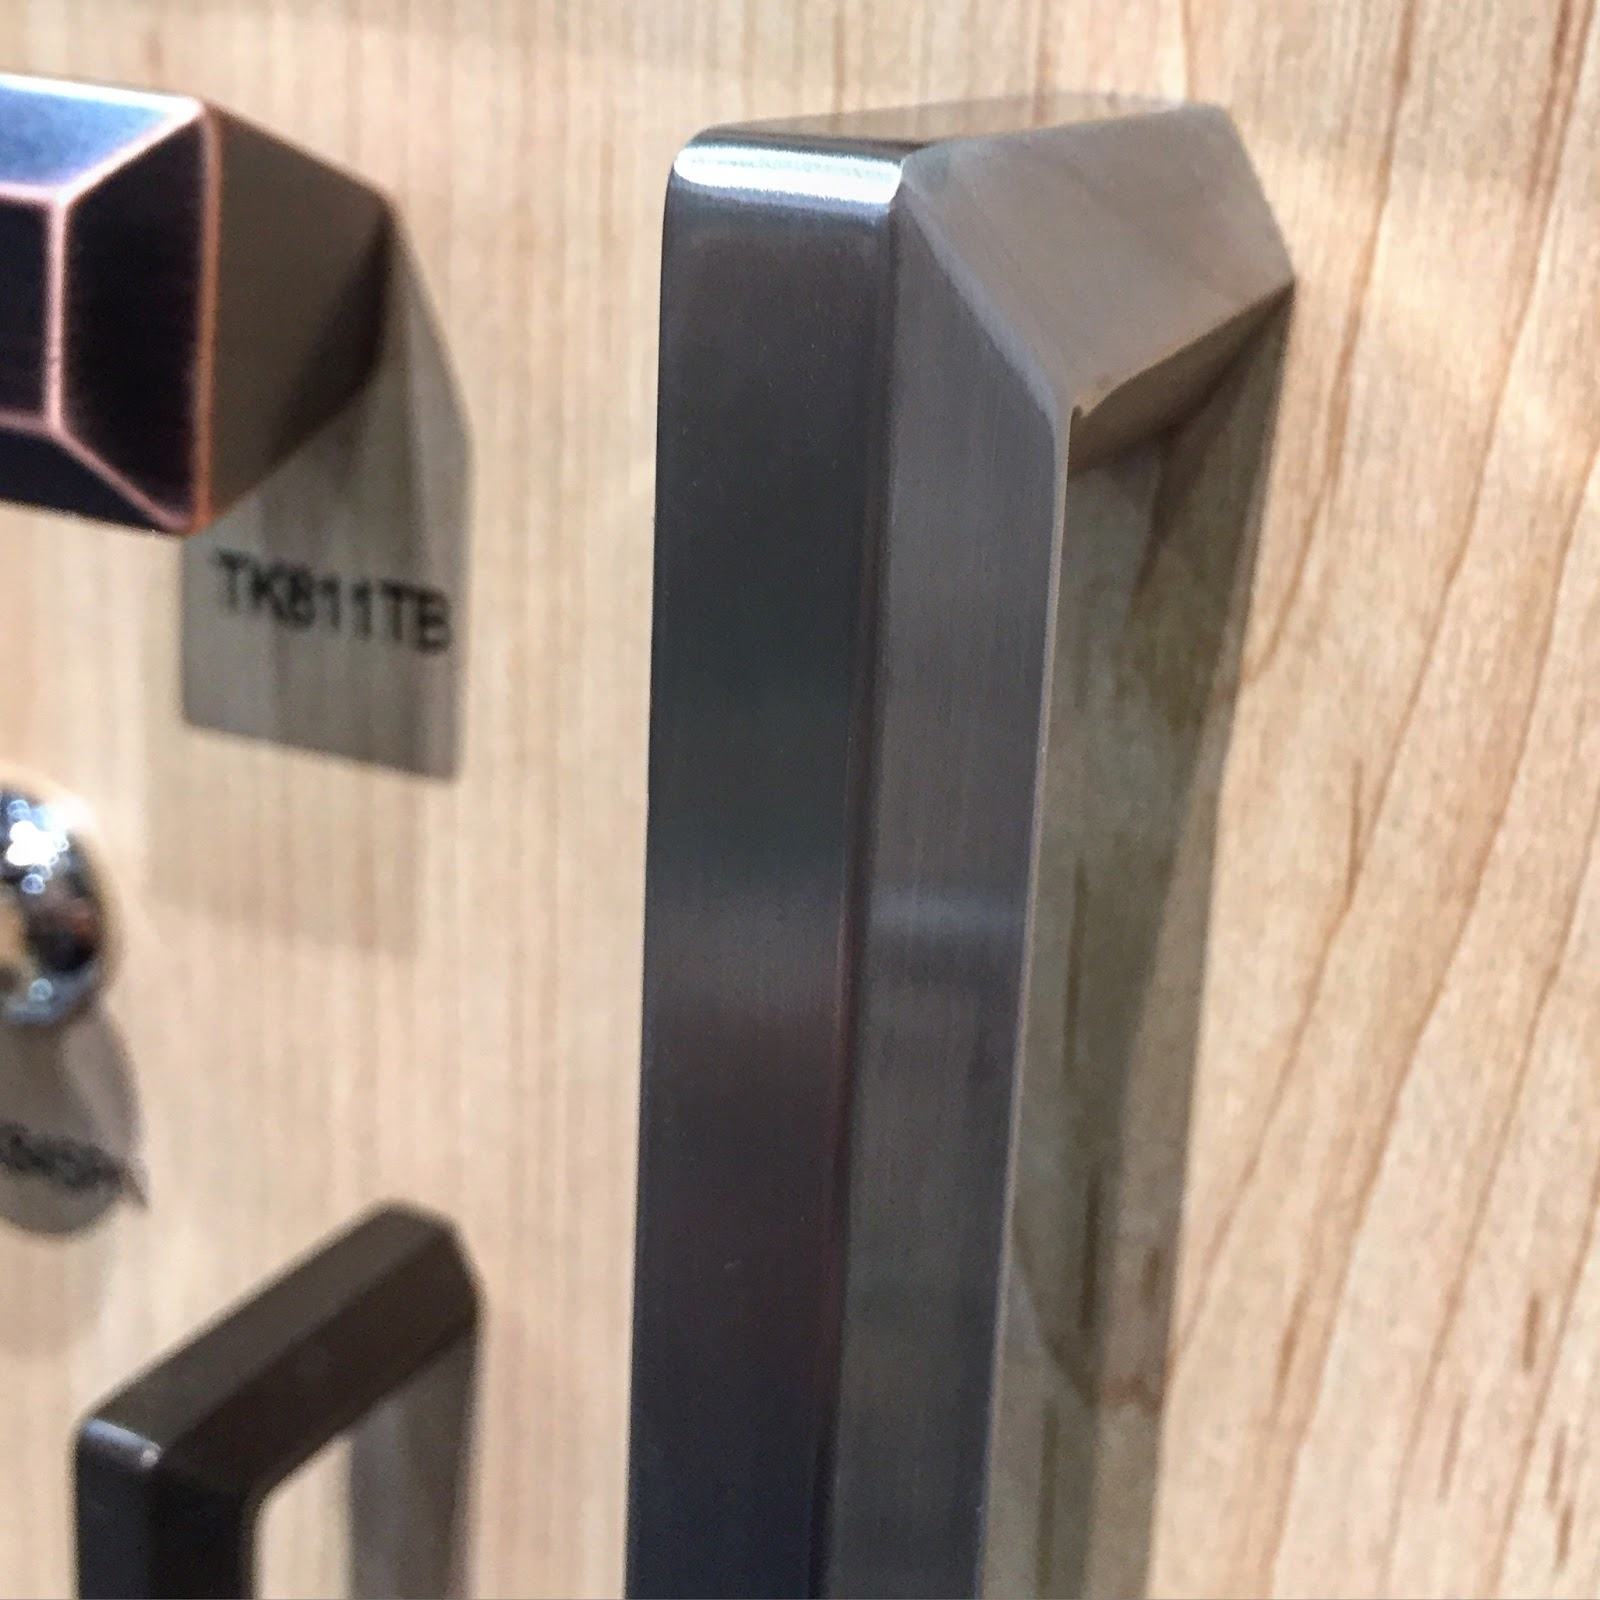 mod design guru fresh ideas cleverly modern design mod must on blogtourkbis with modenus in vegas we were introduced to topknobs one of our generous sponsors designers value topknobs for their exceptional